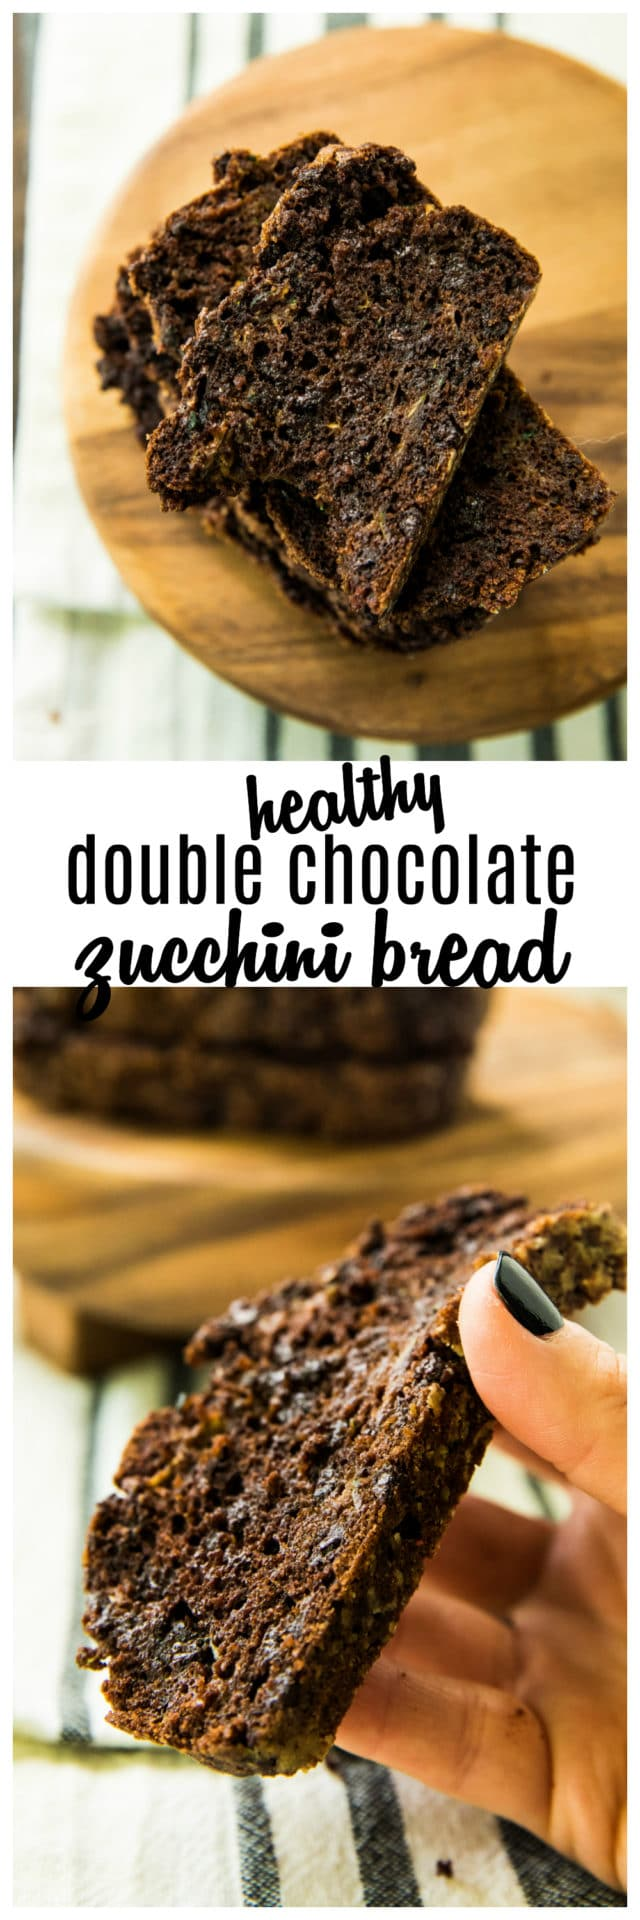 Pinterest image for Healthy Double Chocolate Zucchini Bread